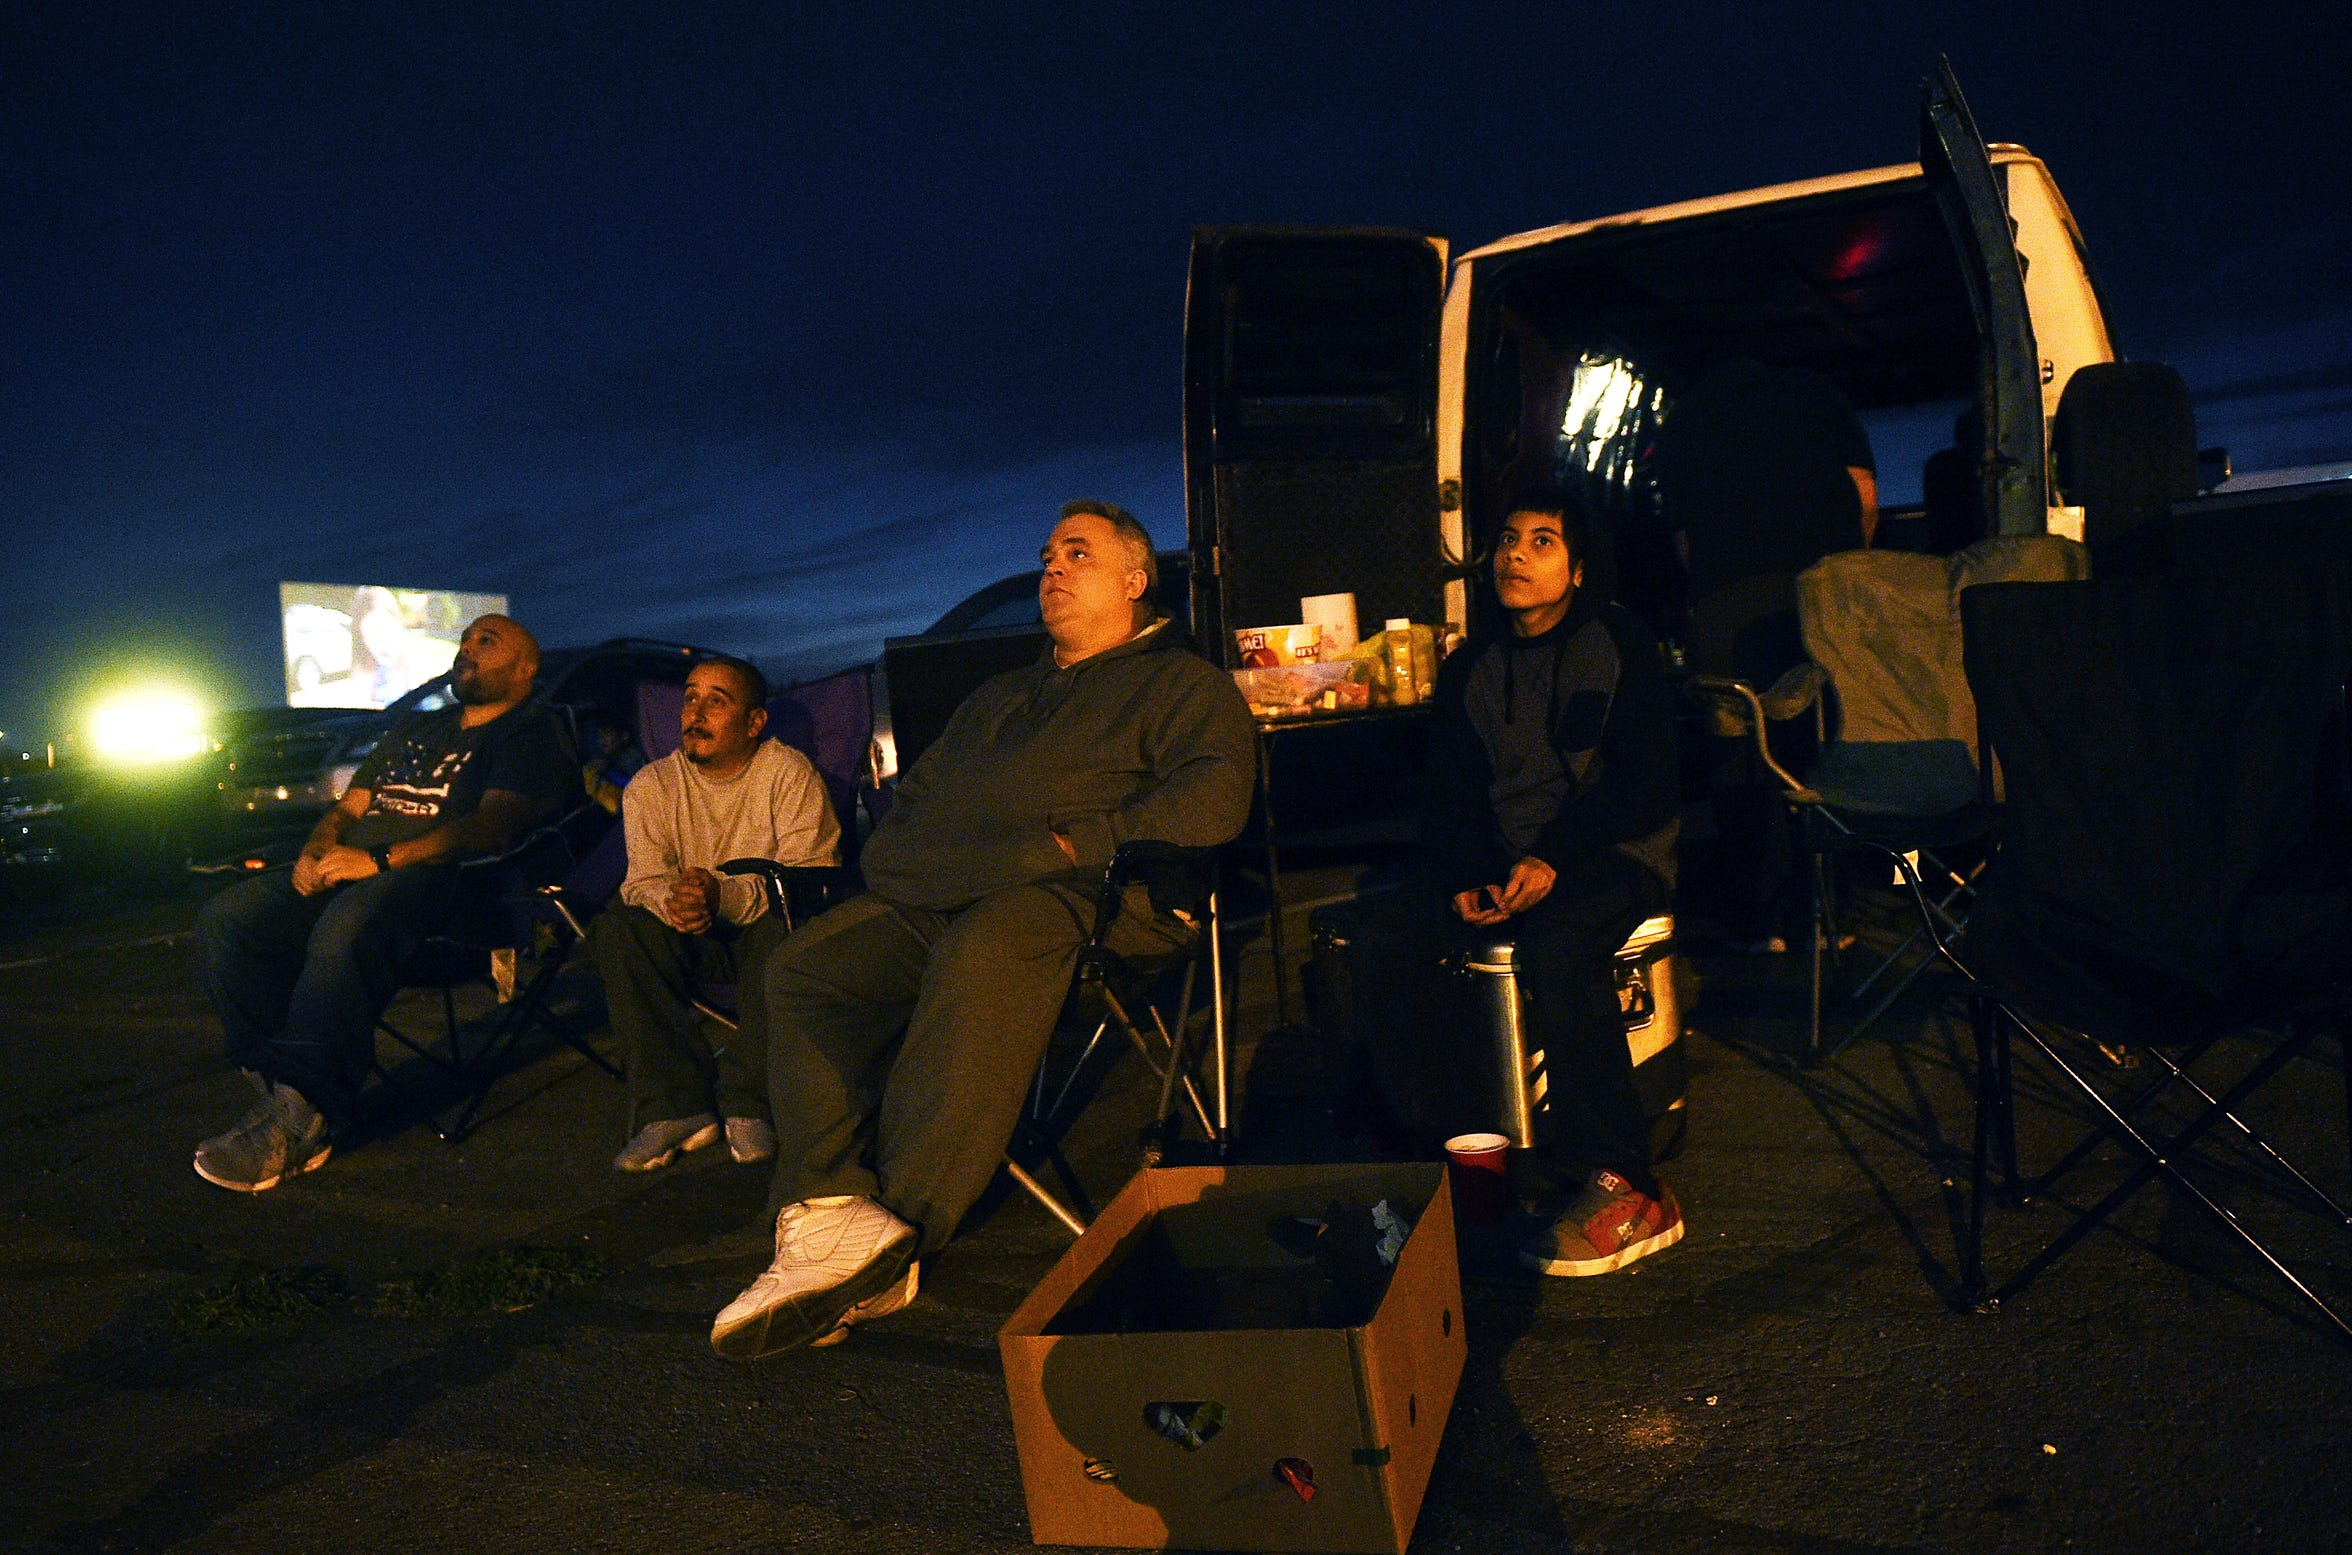 DJ Roney John, right, and Mike Berland, middle, watch the new Predator film with their family at the West Wind El Rancho Drive-In 4 movie theater in Sparks on Sept. 14, 2018.